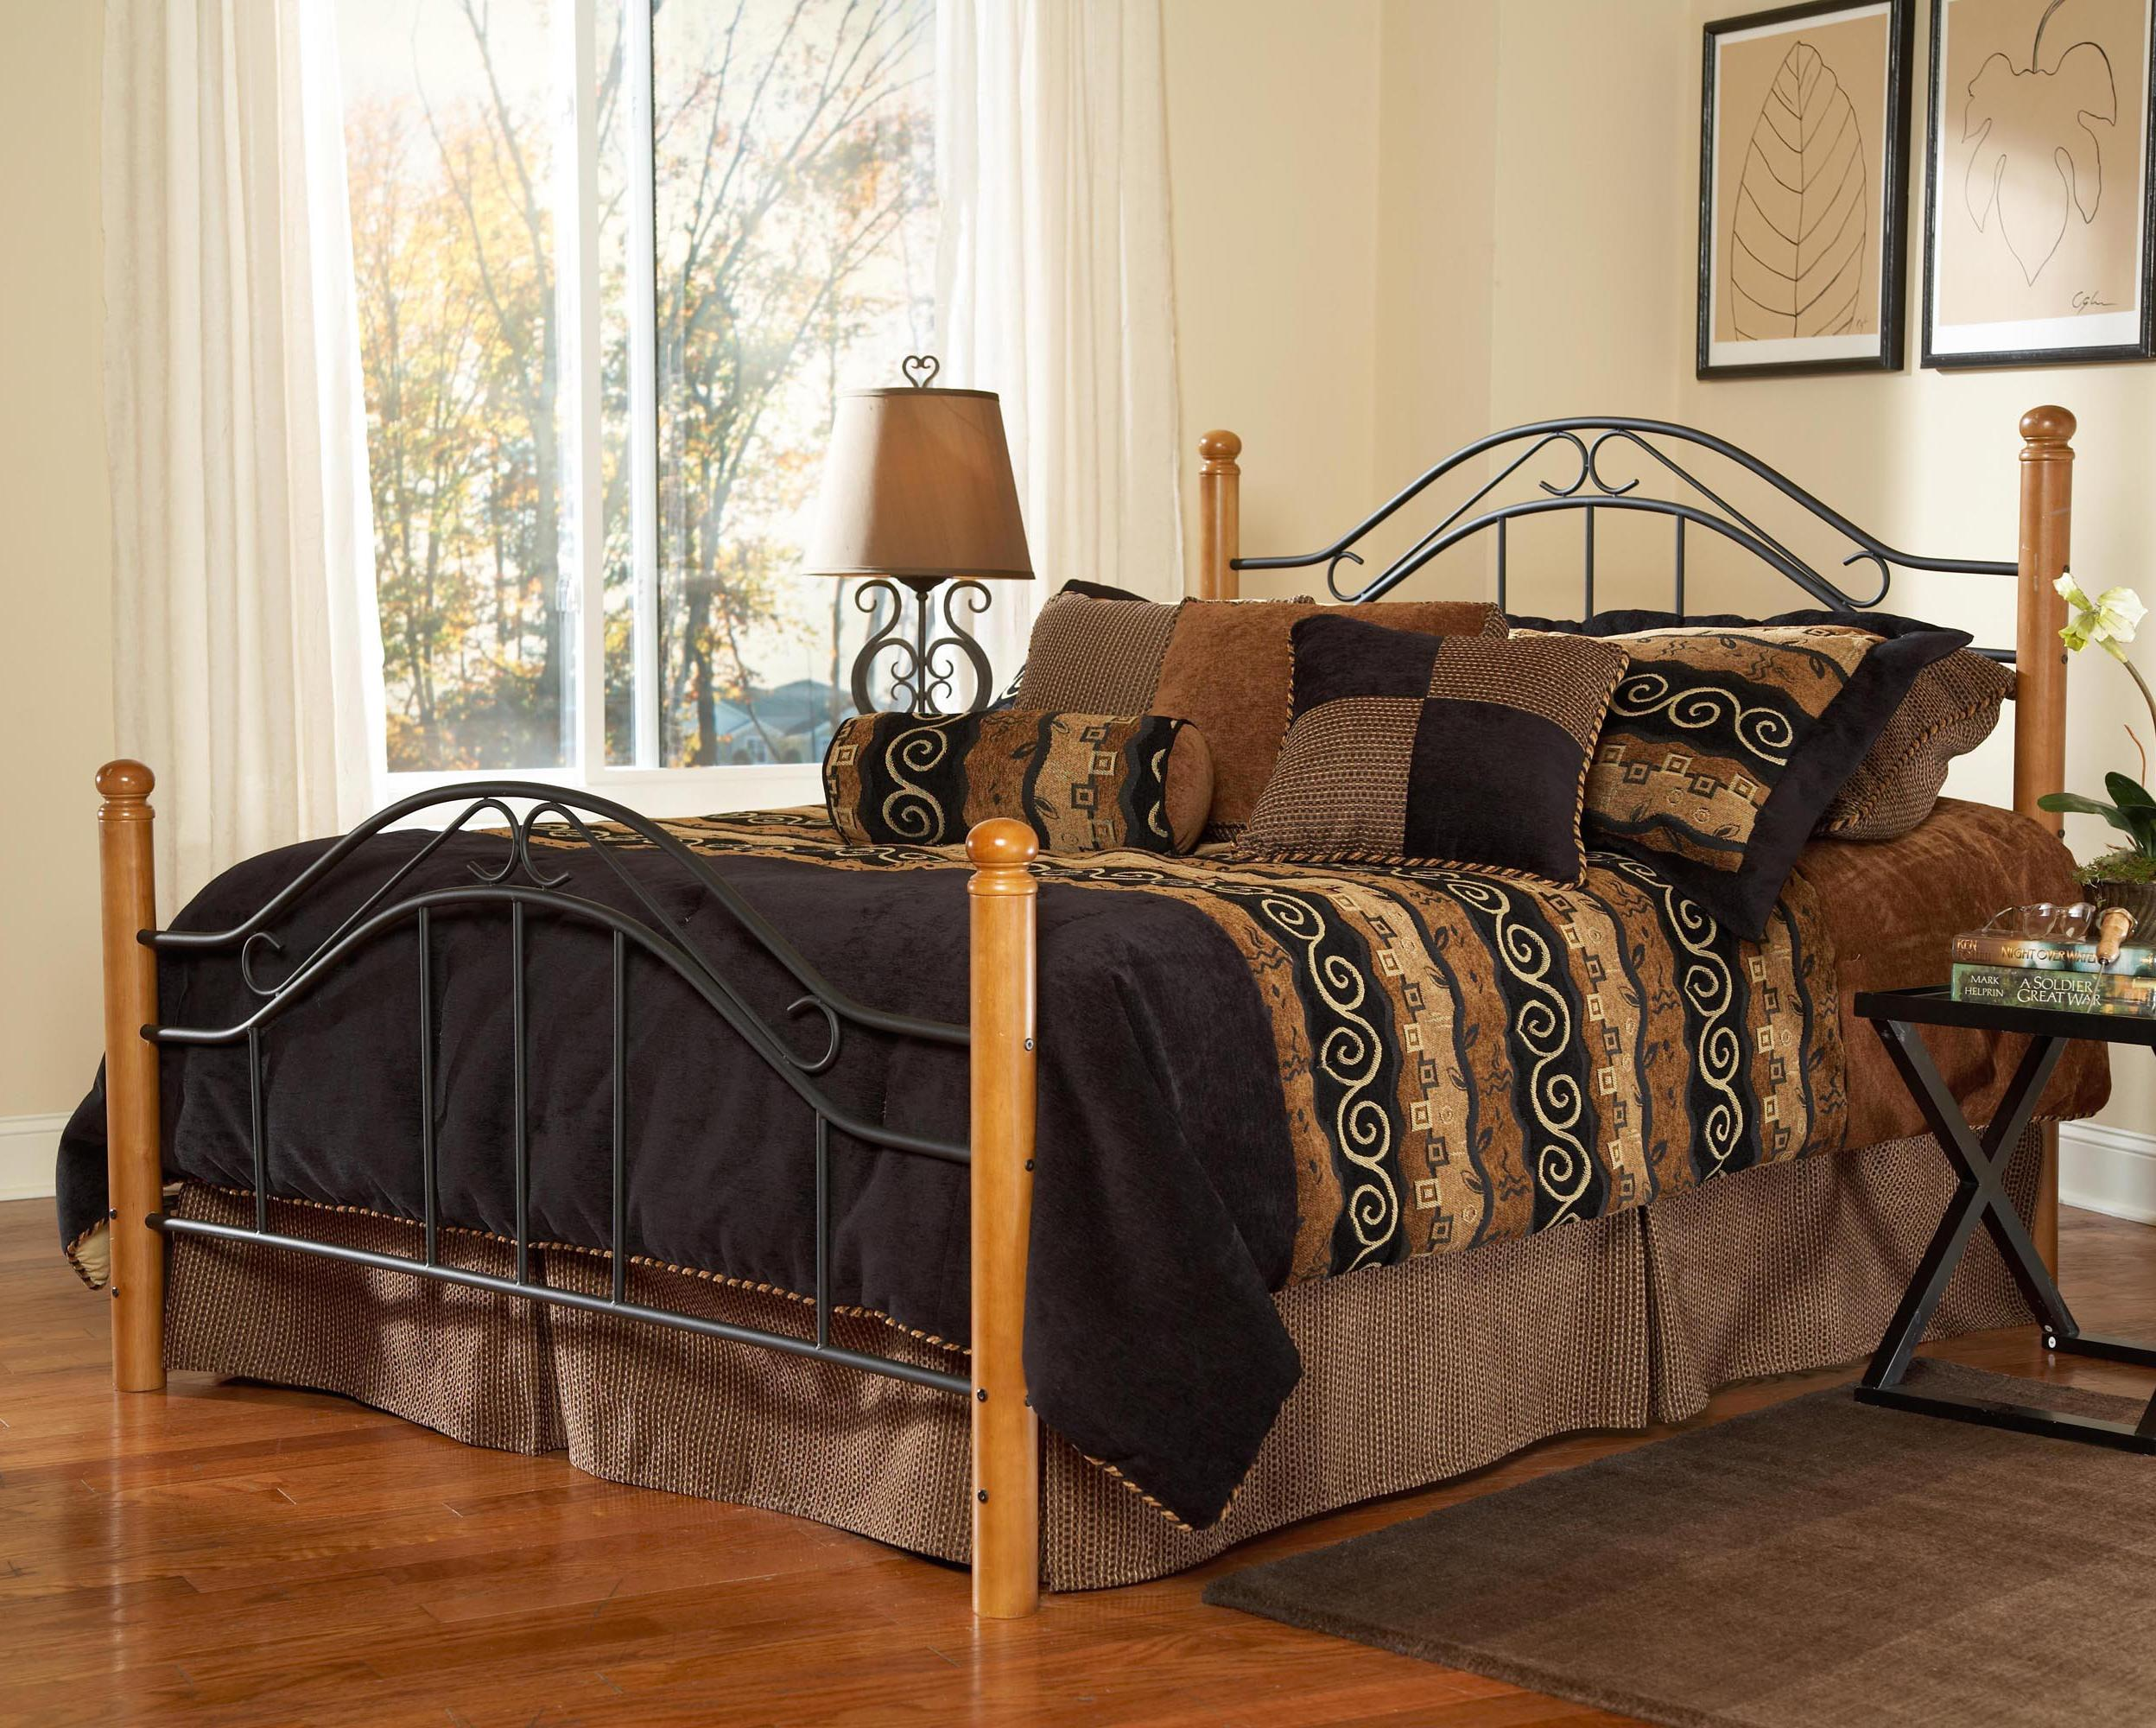 Wood Beds King Winsloh Bed by Hillsdale at Mueller Furniture